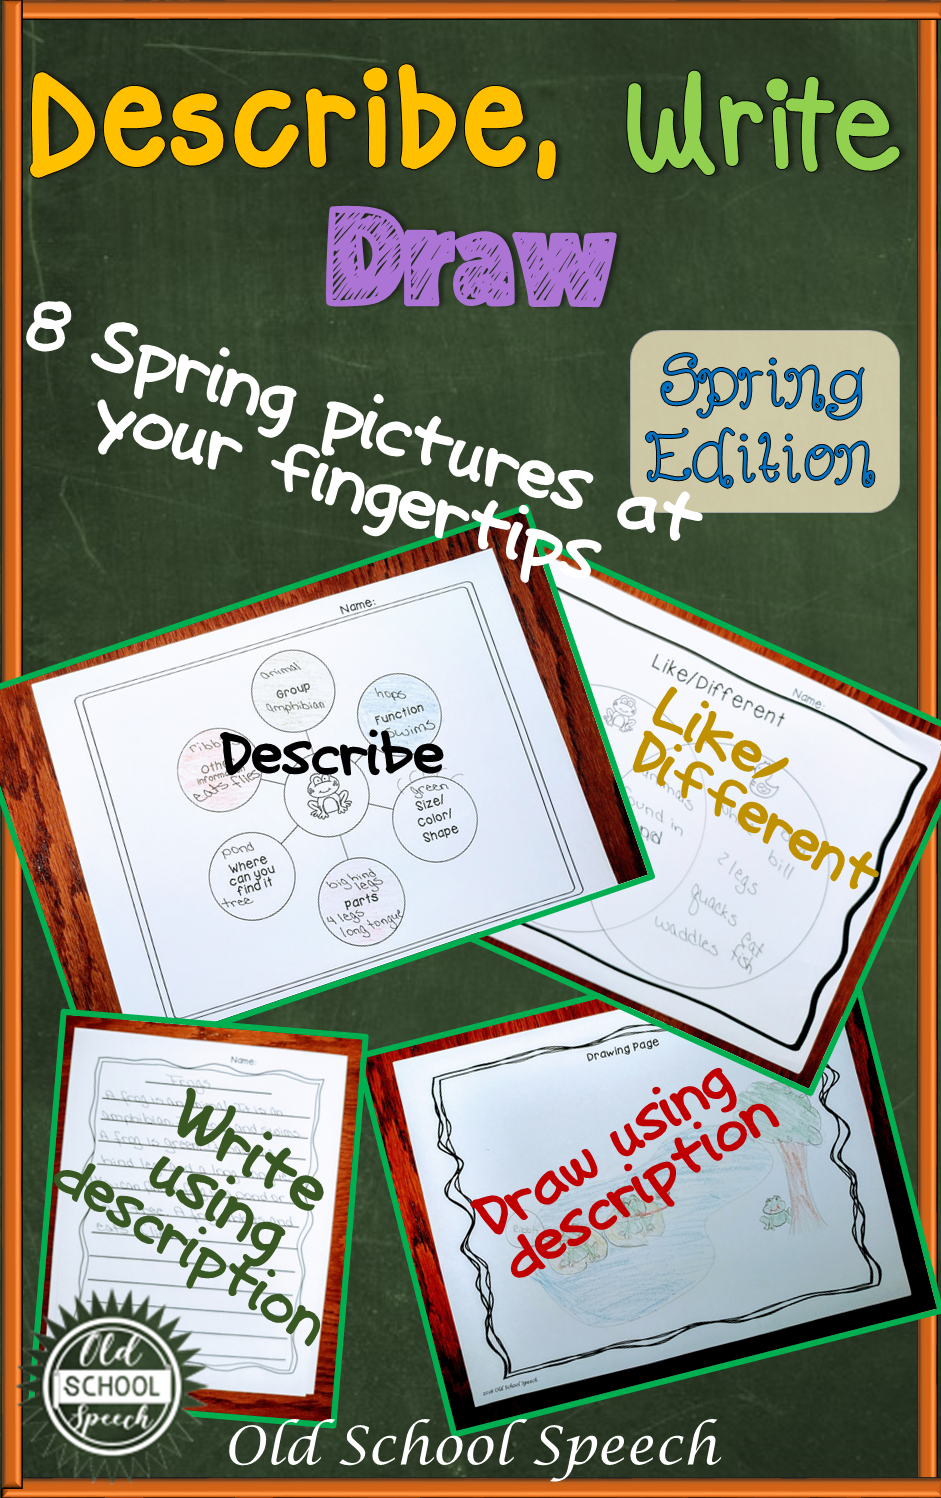 Describe Write Draw Spring Version Language Therapy Ideas Diagram Of Fingertips Each Object Has Its Own Describing The Objects Are Paired For Like Different Worksheets 4 Pages Student To